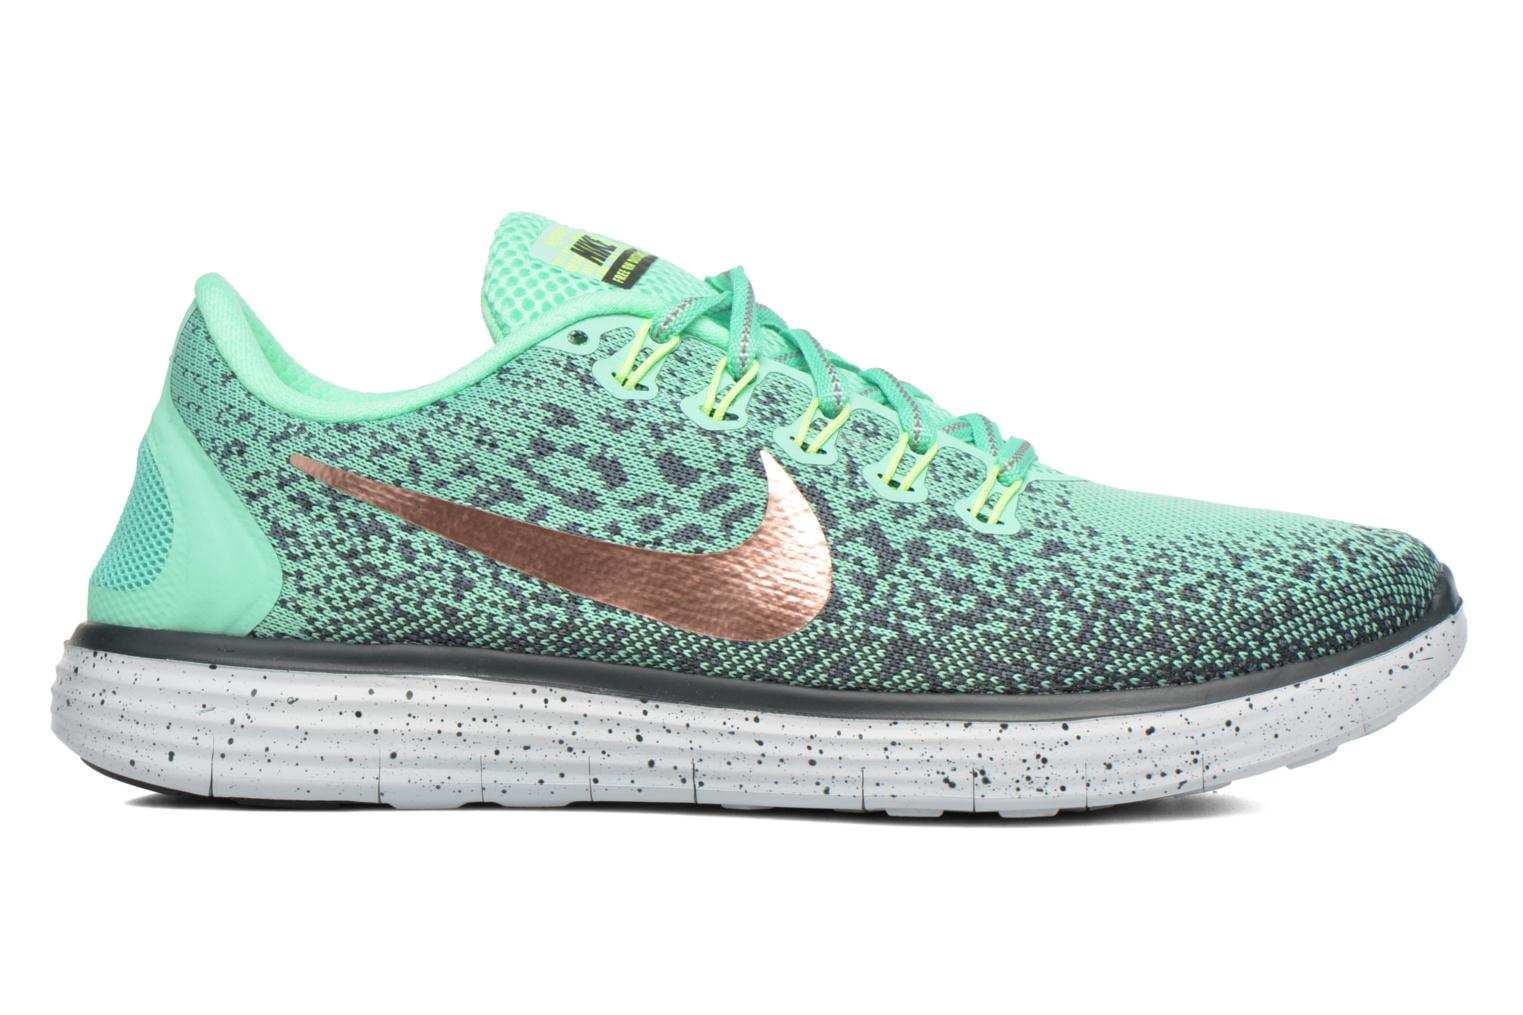 W Nike Free Rn Distance Shield Green Glow/Mtlc Red Bronze-Hasta-Seaweed